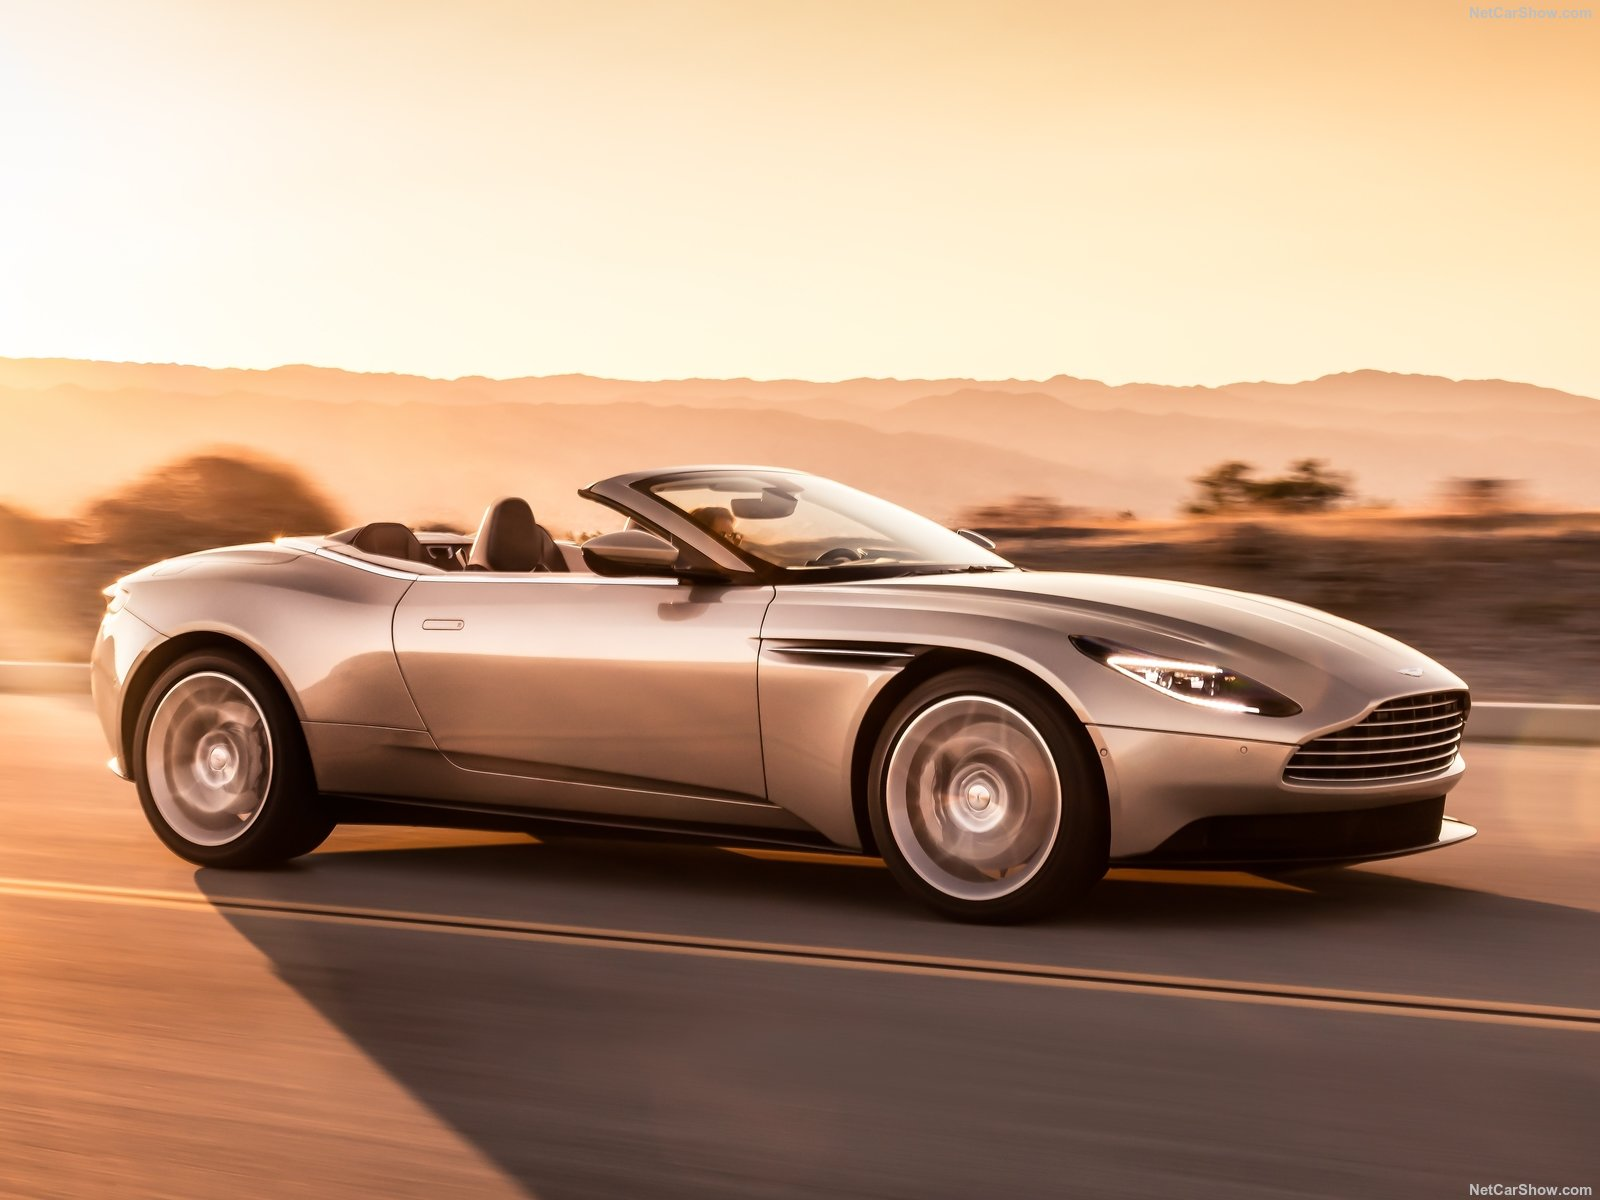 Aston Martin DB11 Volante Goddess of Beauty Loses the Roof and Fits